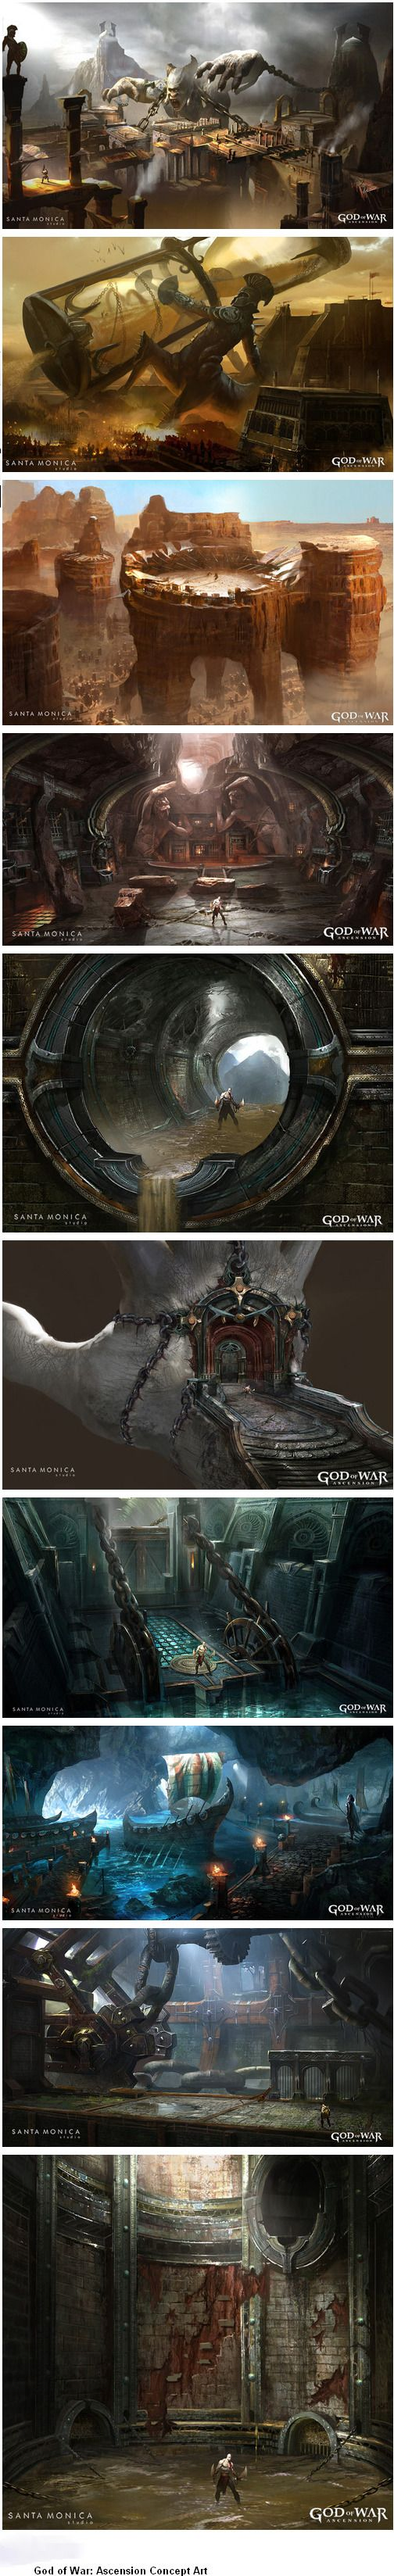 »»»God of War: Ascension Concept Art »»»